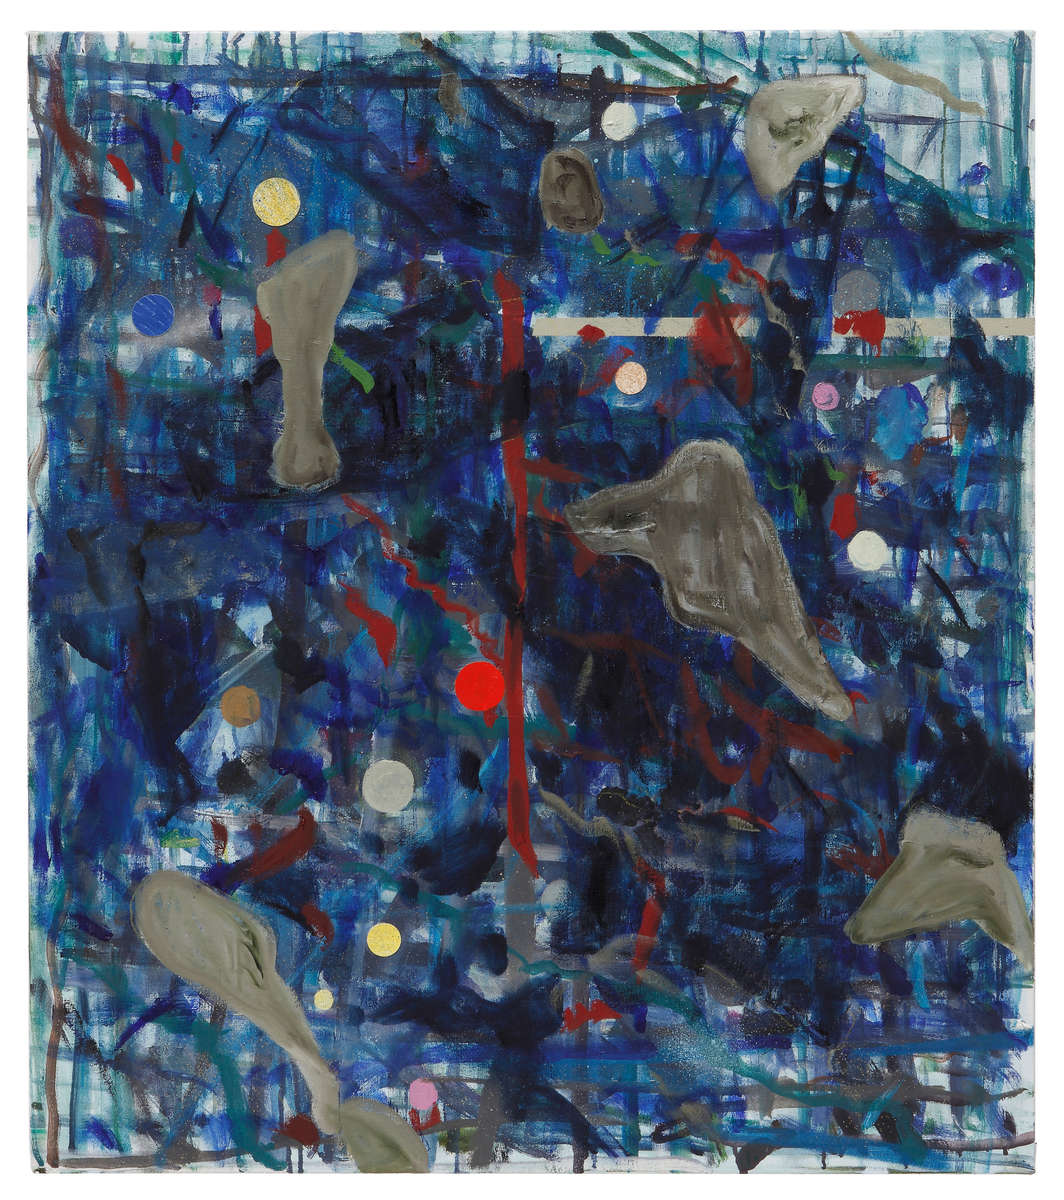 Oil and collage on linen82 x 72 in.